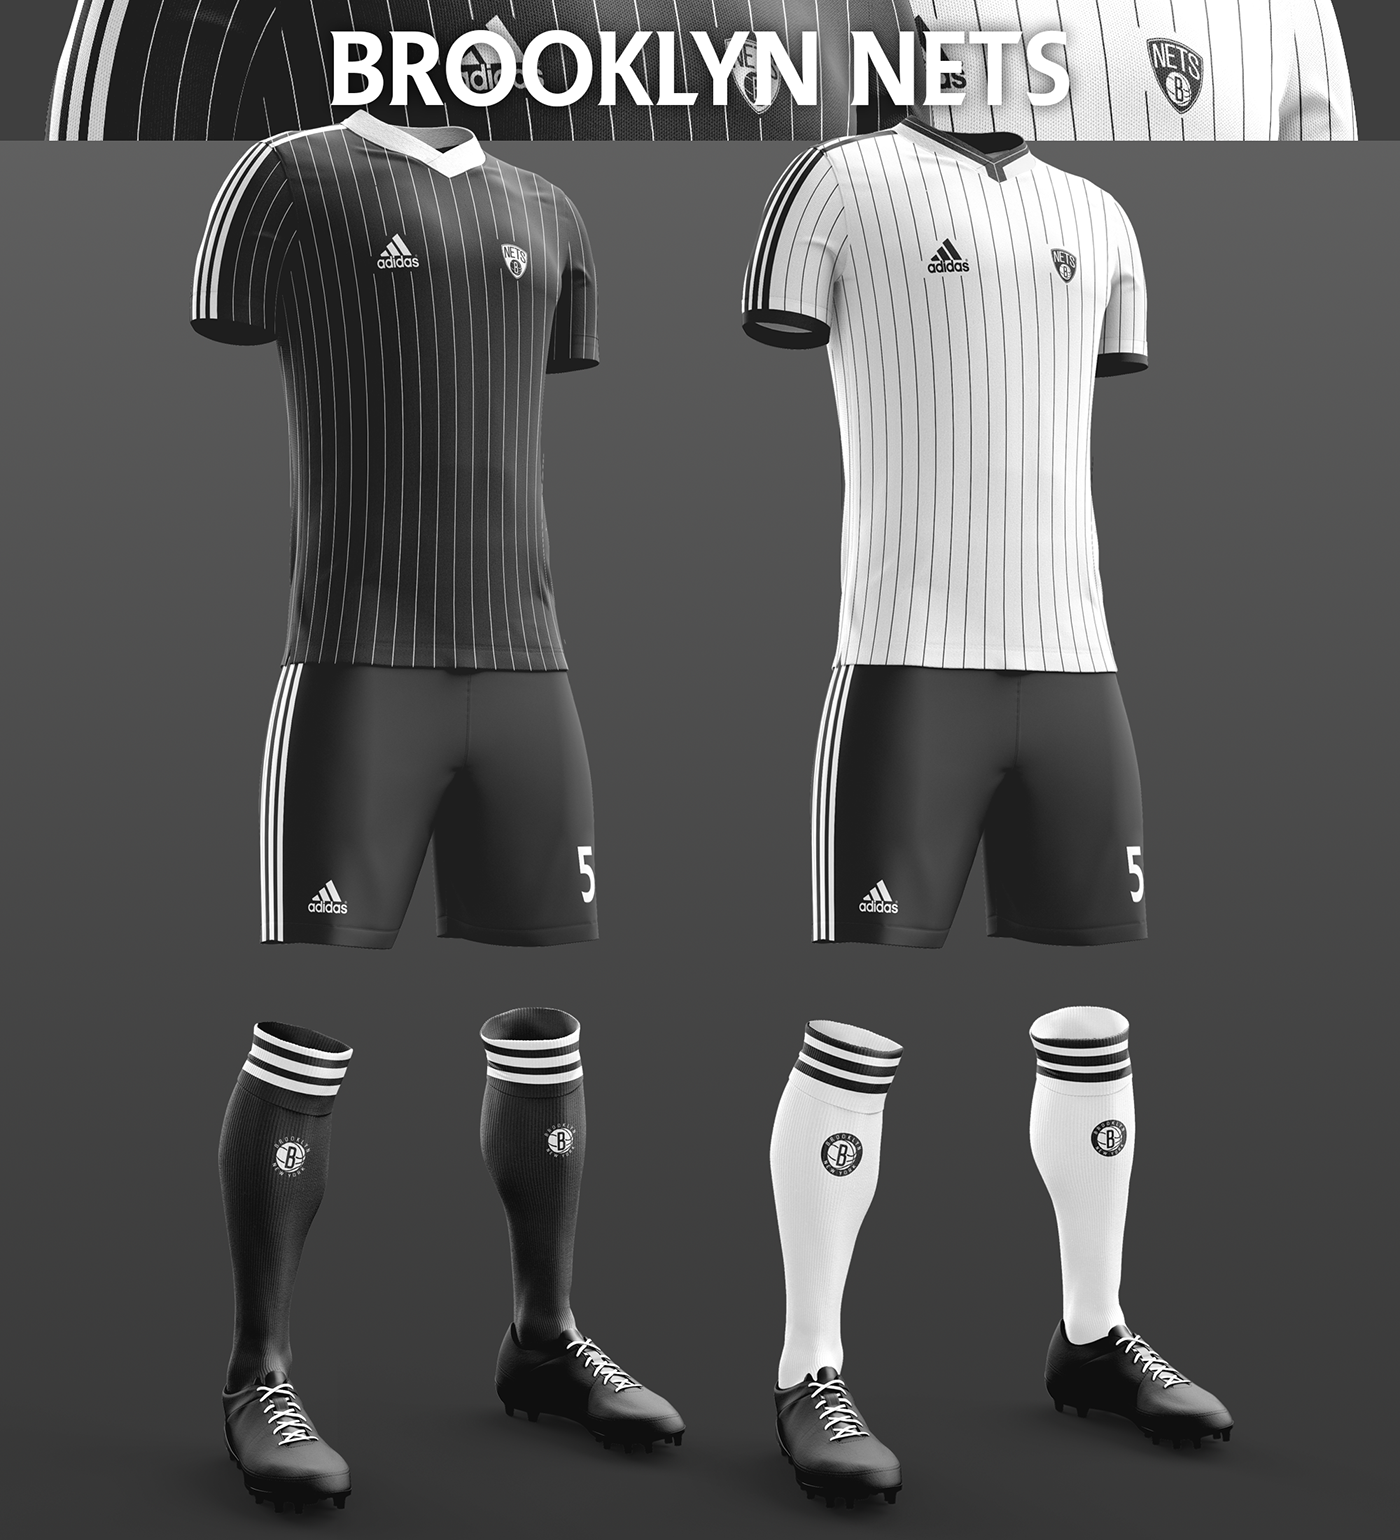 Talisman & Co. | Brooklyn Nets Soccer Concept Kit